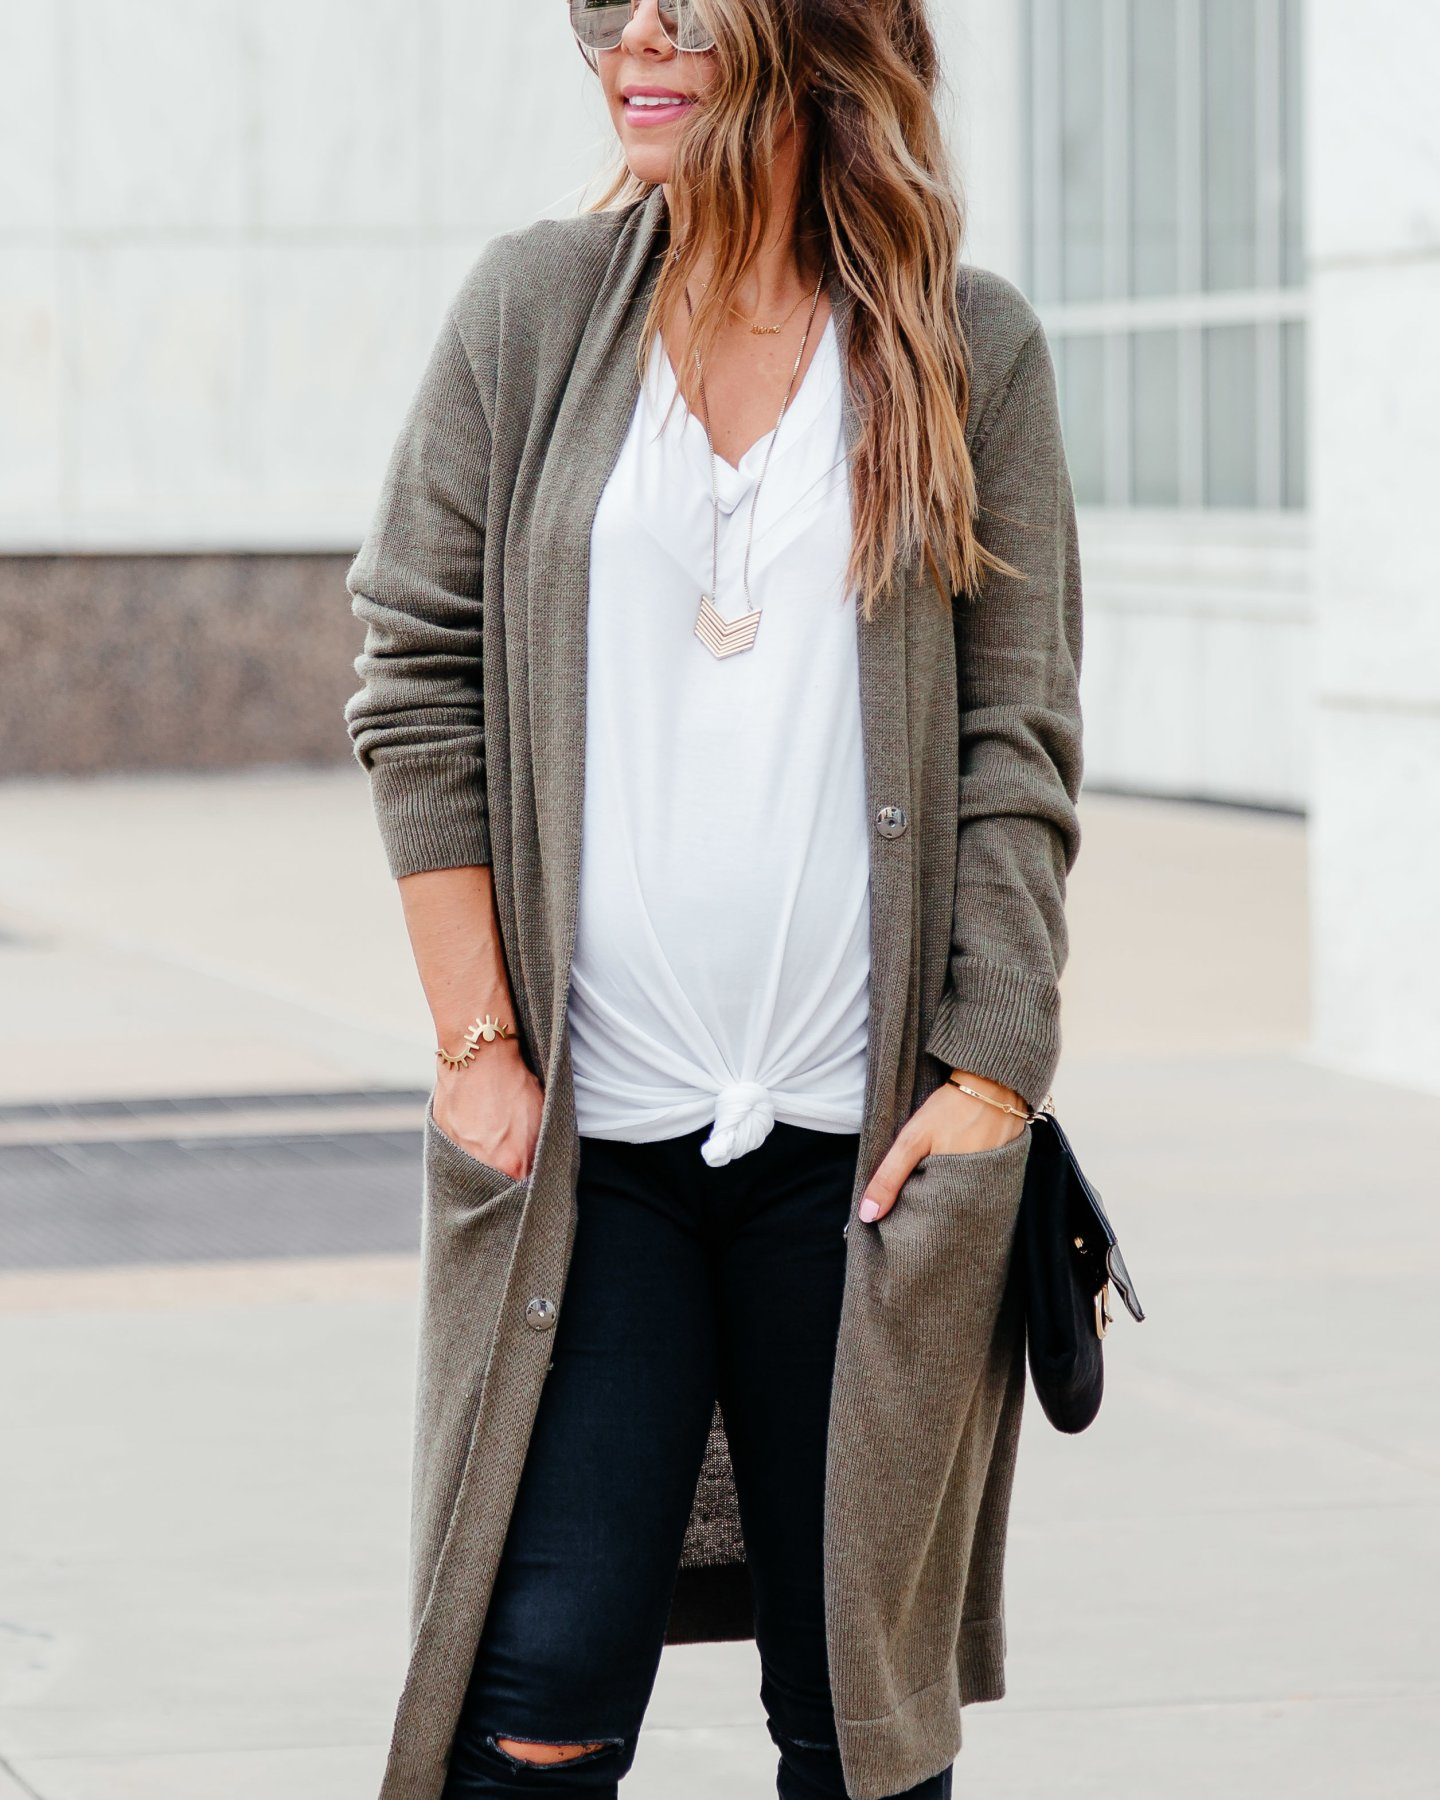 blogger wearing white tee with olive cardigan